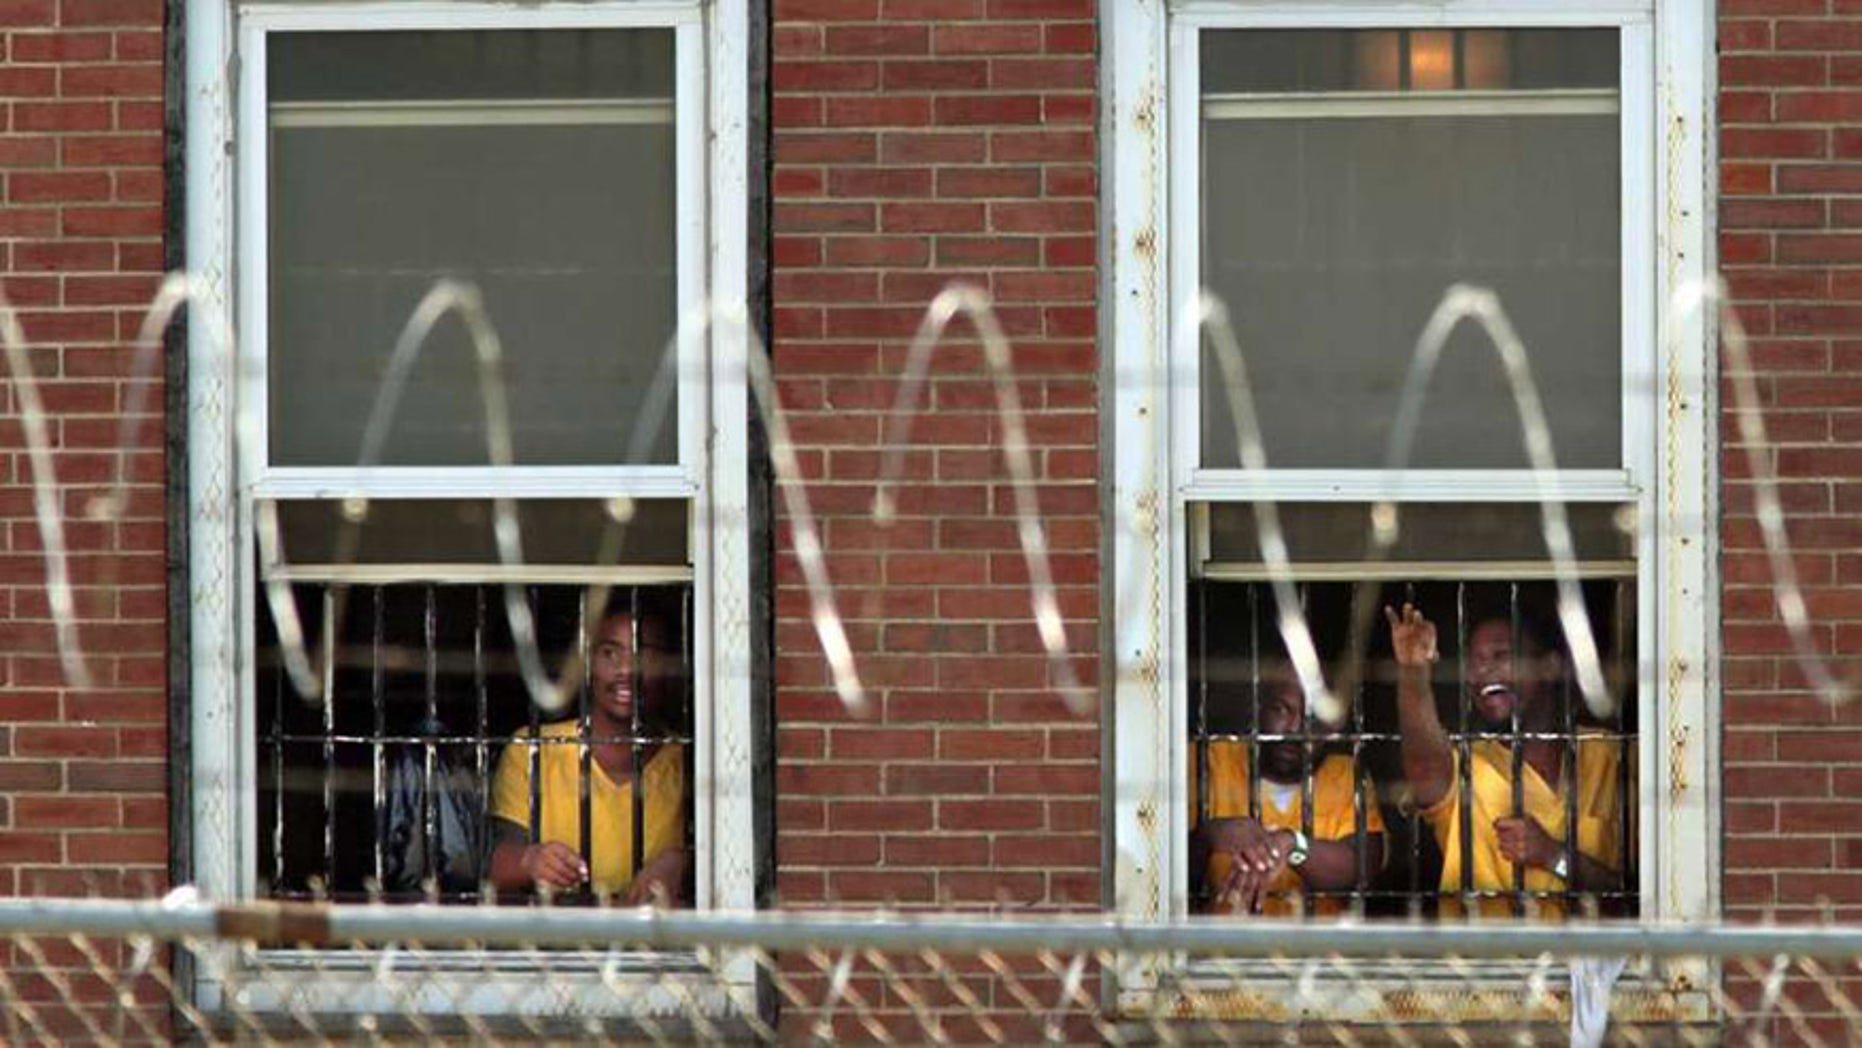 Inmates watch the arrival of temporary air conditioning units at the St. Louis Medium Security Institution.